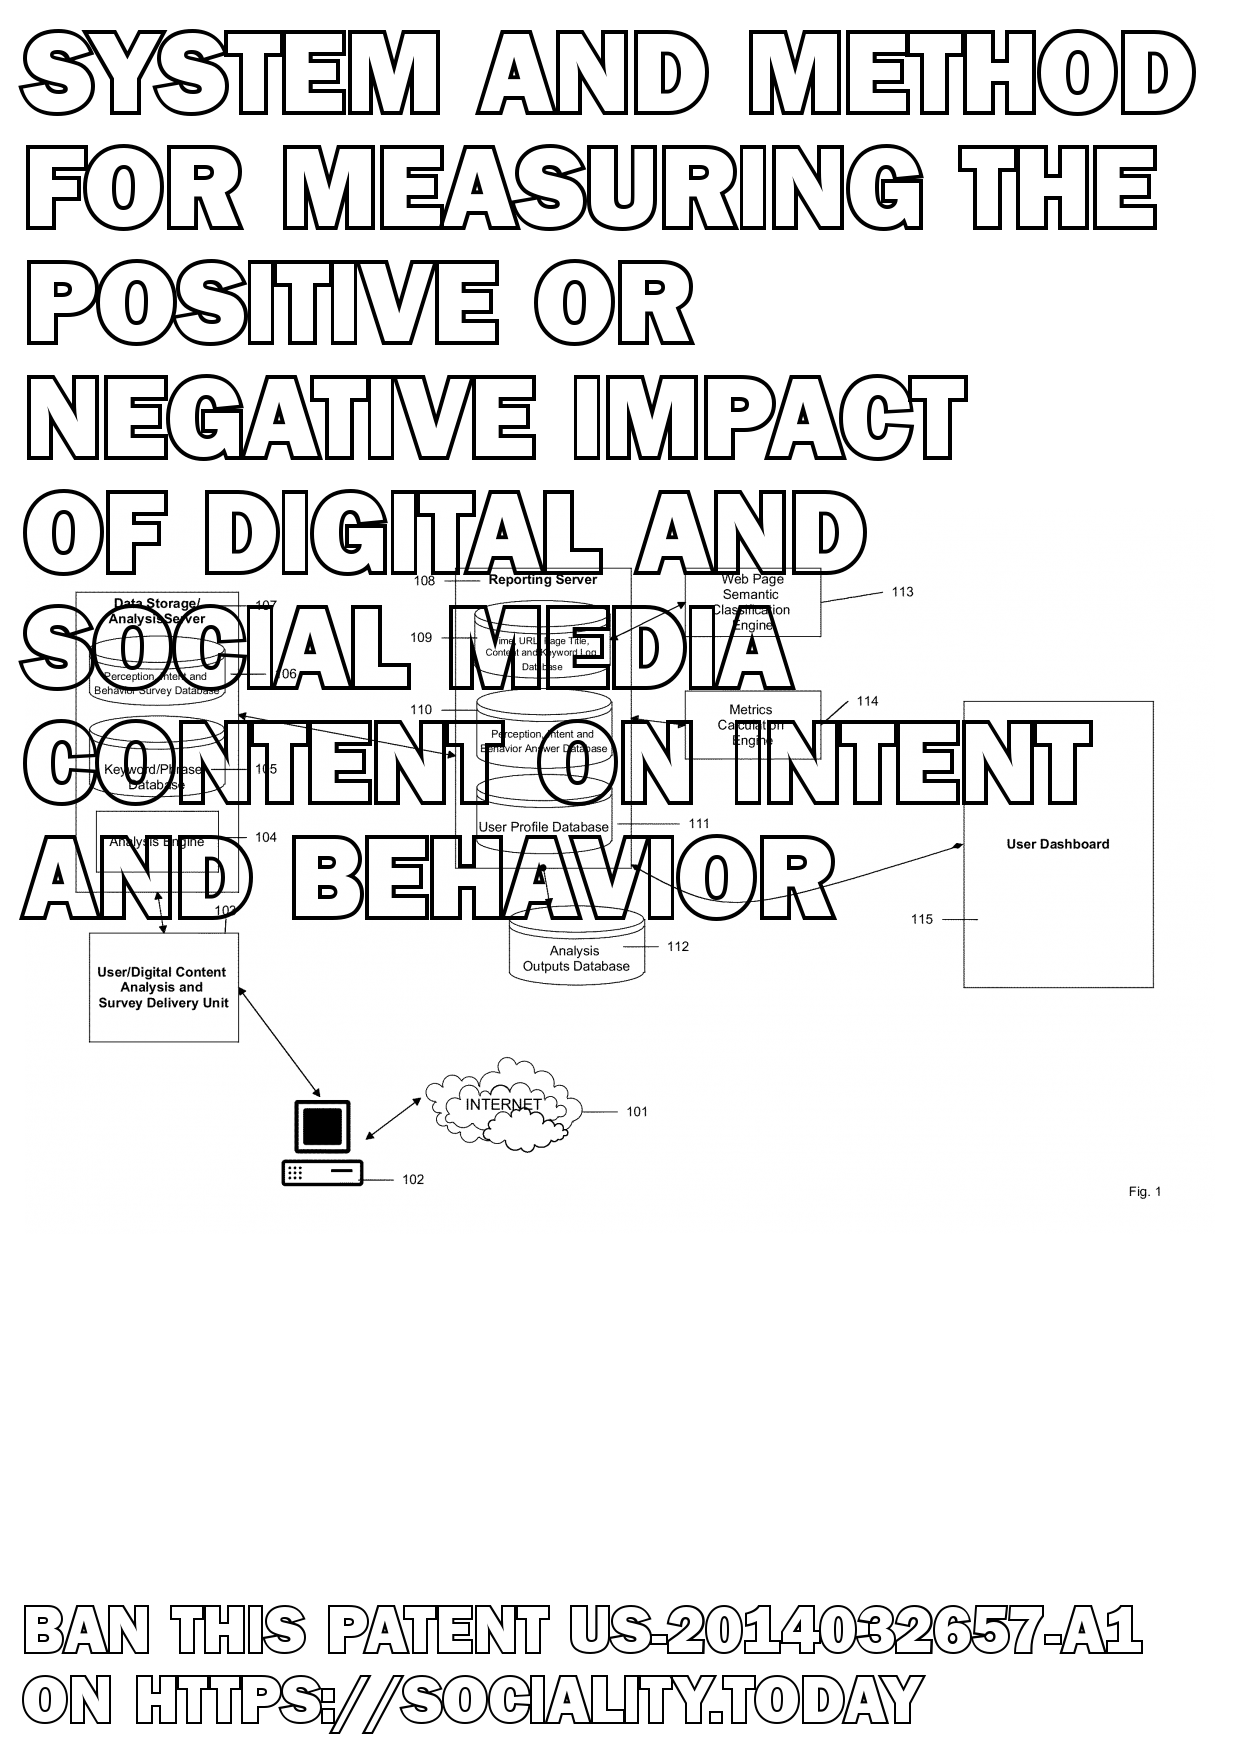 System and Method for Measuring the Positive or Negative Impact of Digital and Social Media Content on Intent and Behavior  - US-2014032657-A1